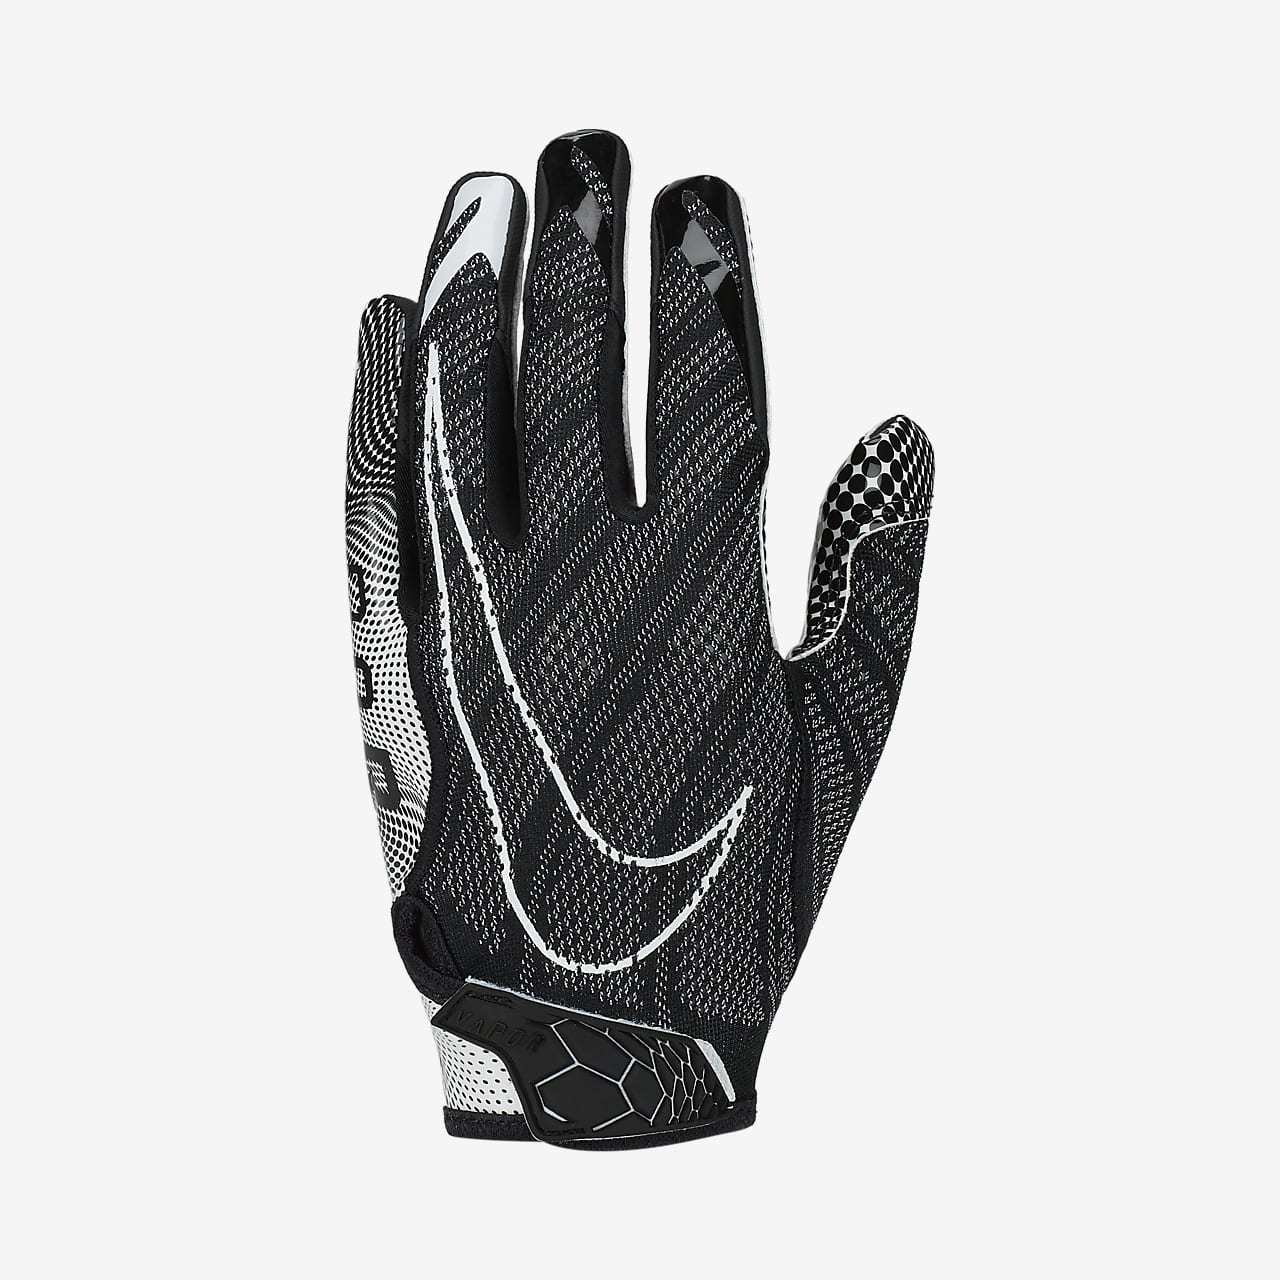 Nike Vapor Knit 3.0 Football Gloves